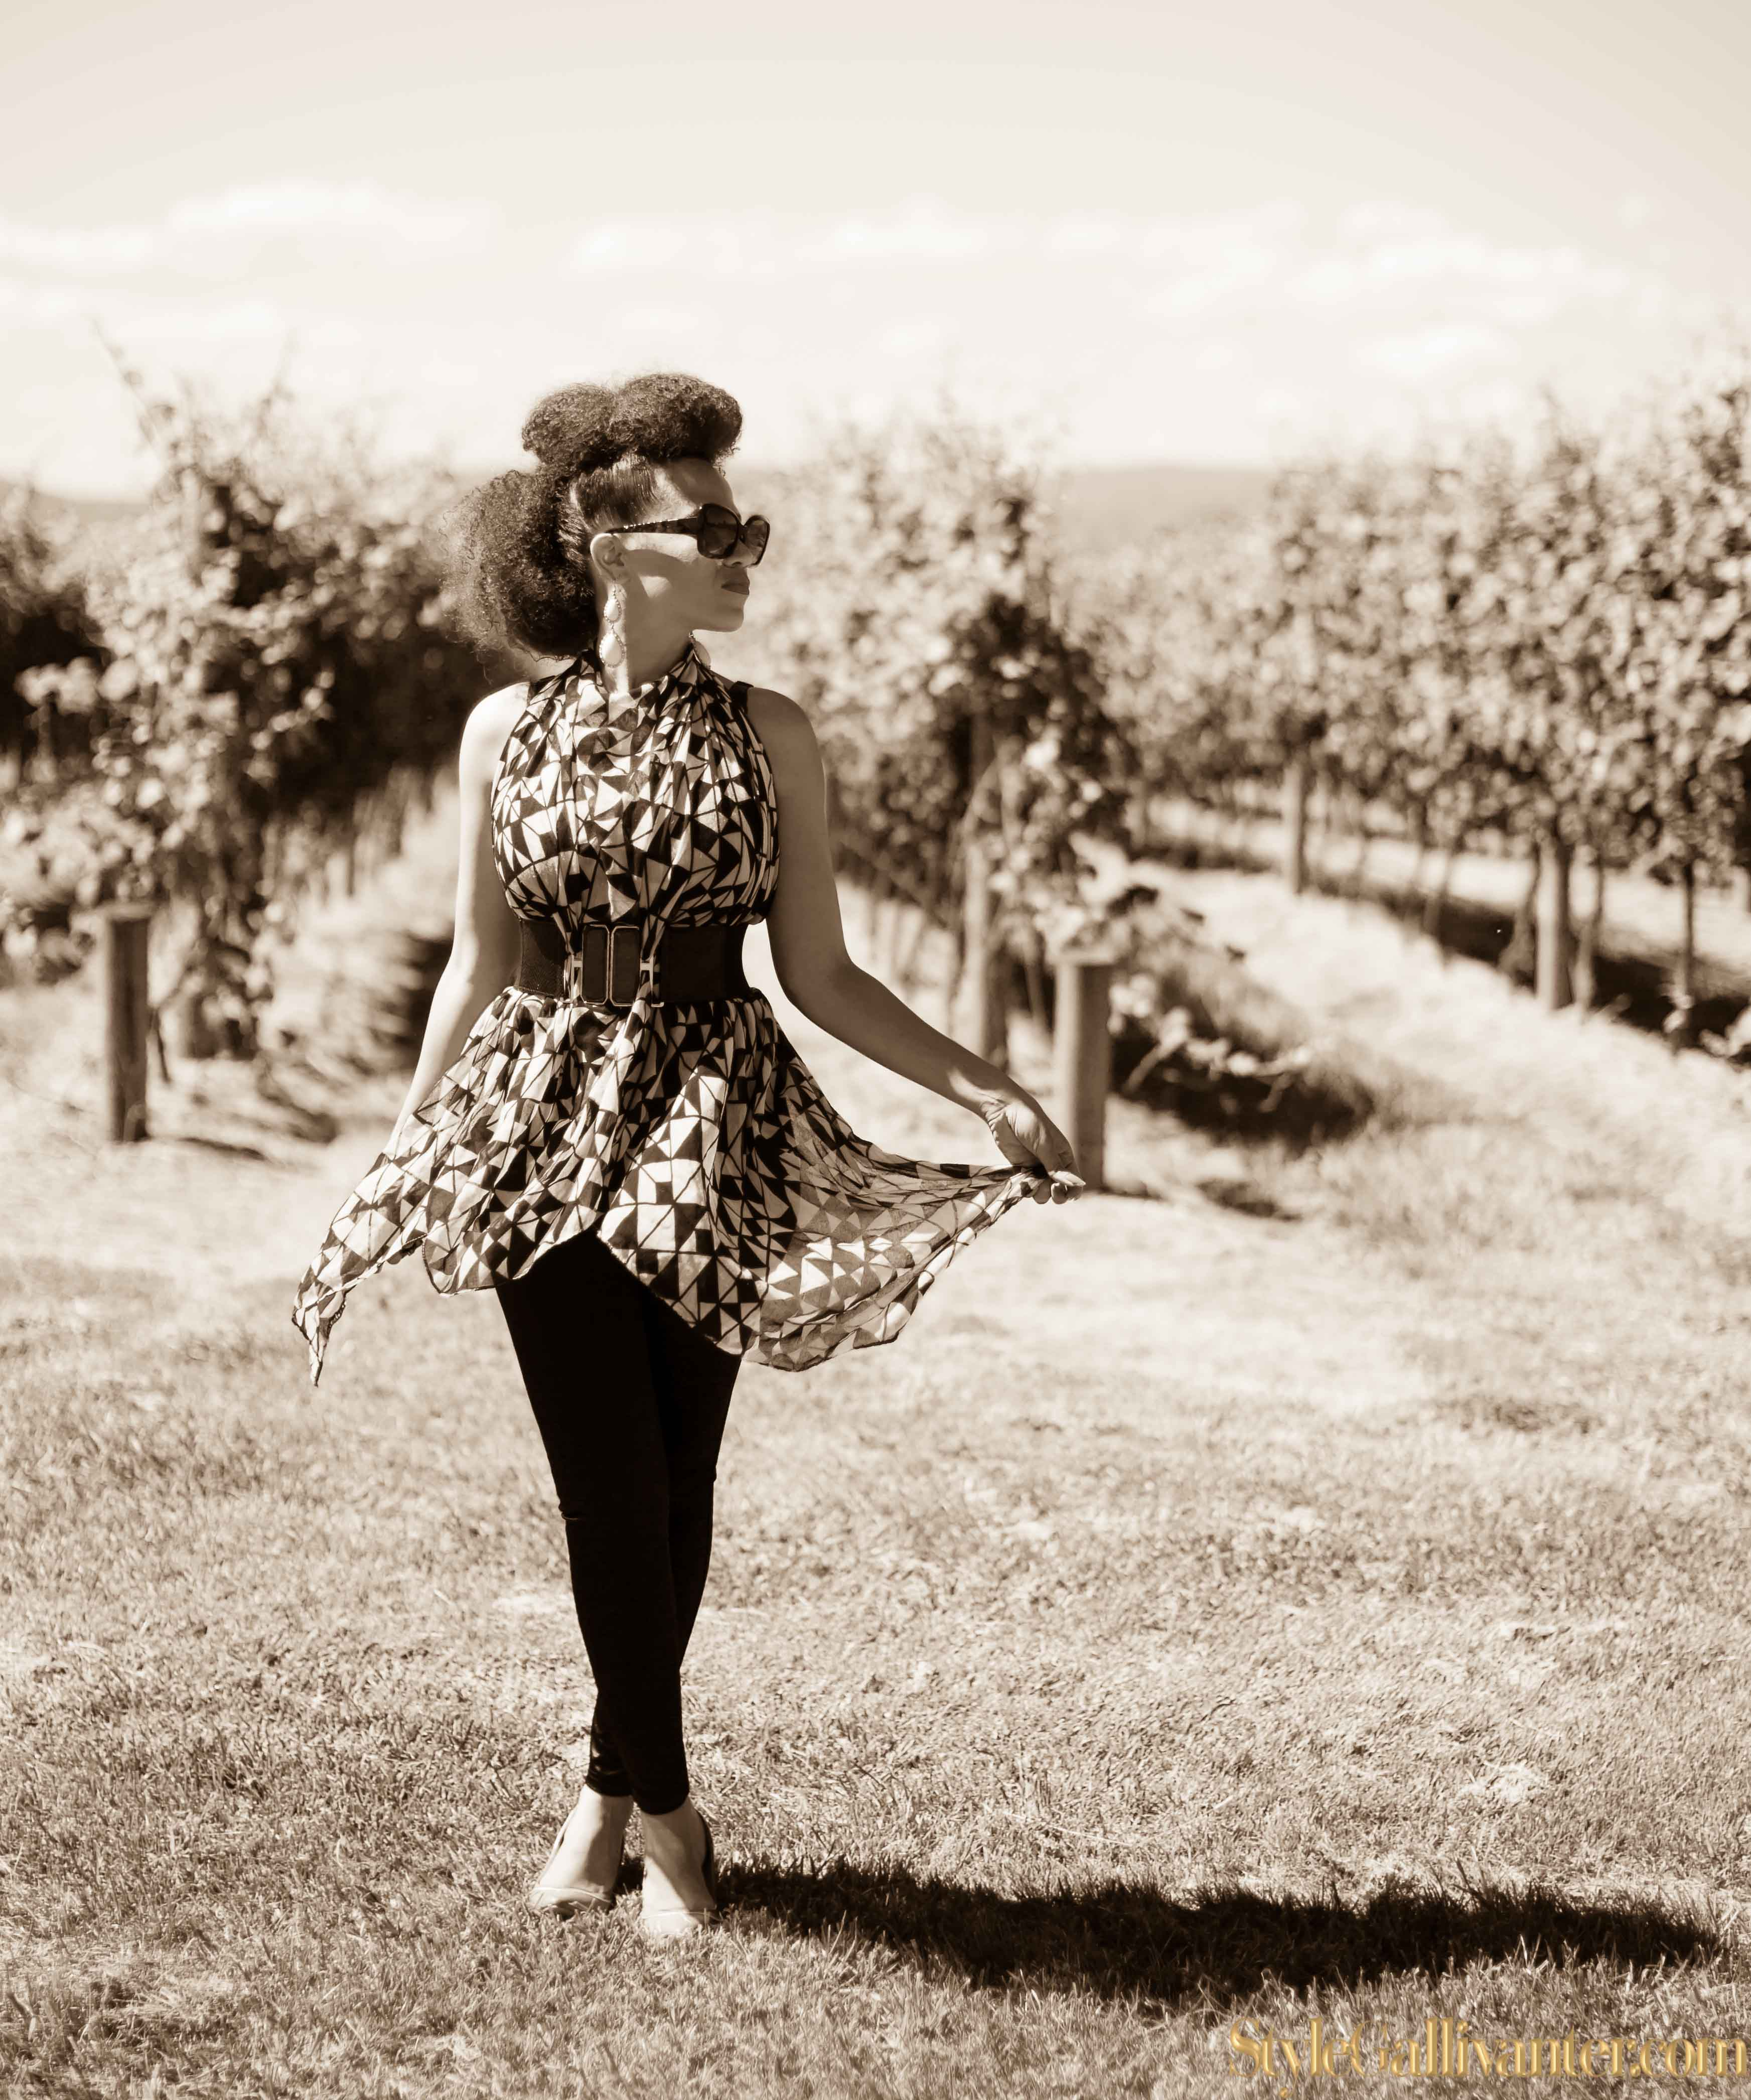 best-new-bloggers-2014_sepia-fashion-editorials_monochrome-sepia_how-to-wear-a-scarf_best-new-bloggers-melbourne-australia-2014_top-african-hair-bloggers_best-hair-bloggers-6